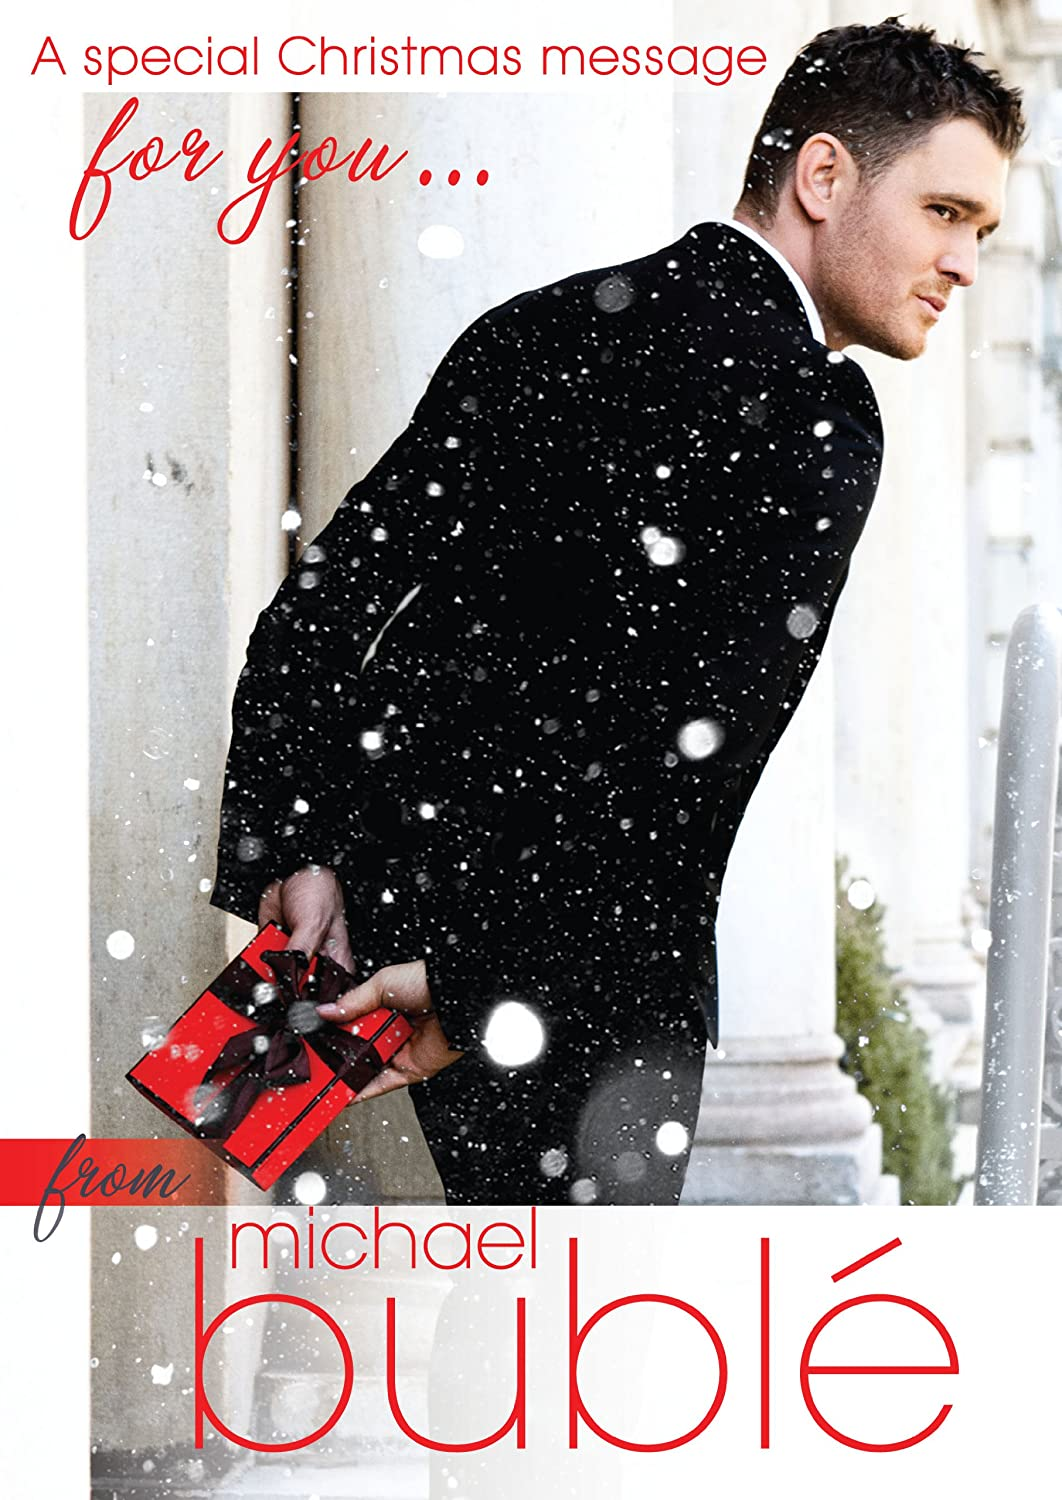 Michael Buble Sound Christmas Greeting Card: Amazon.co.uk: Office ...